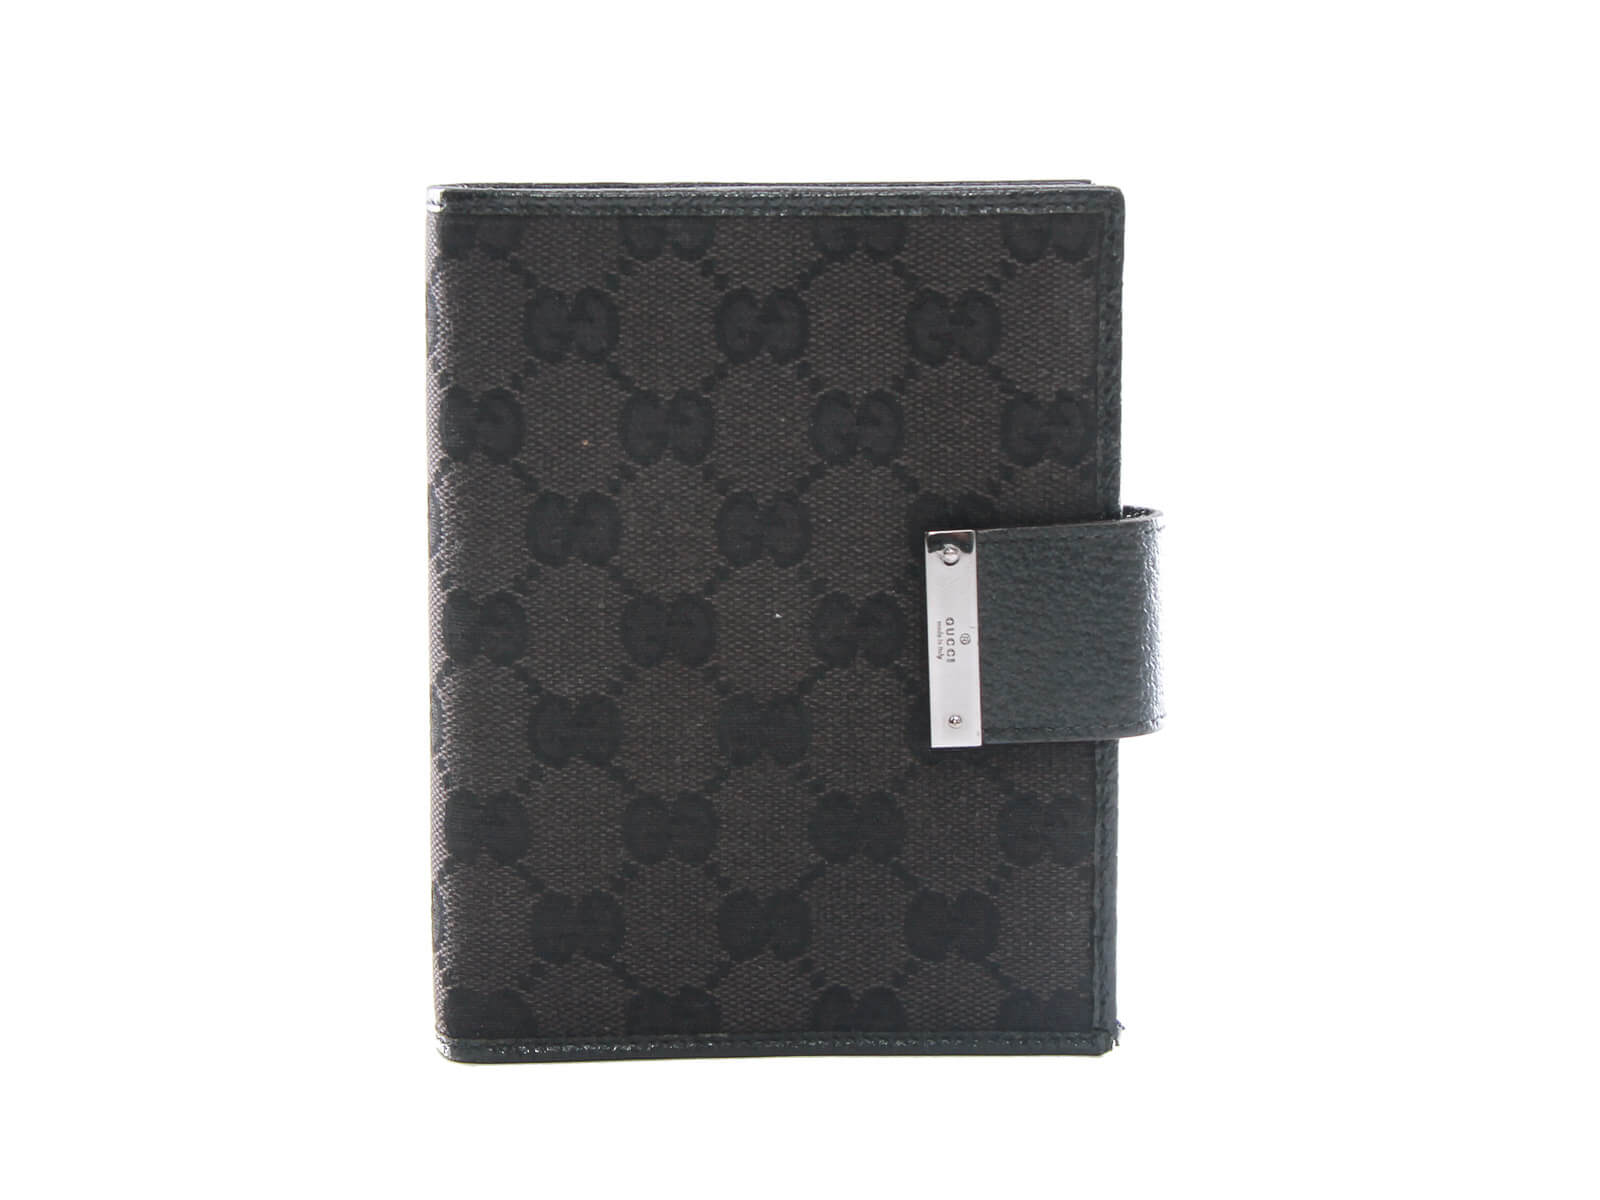 1b9e170604e44 Authentic Gucci Web Black GG Logos Pattern Agenda Notebook Cover. Tap to  expand